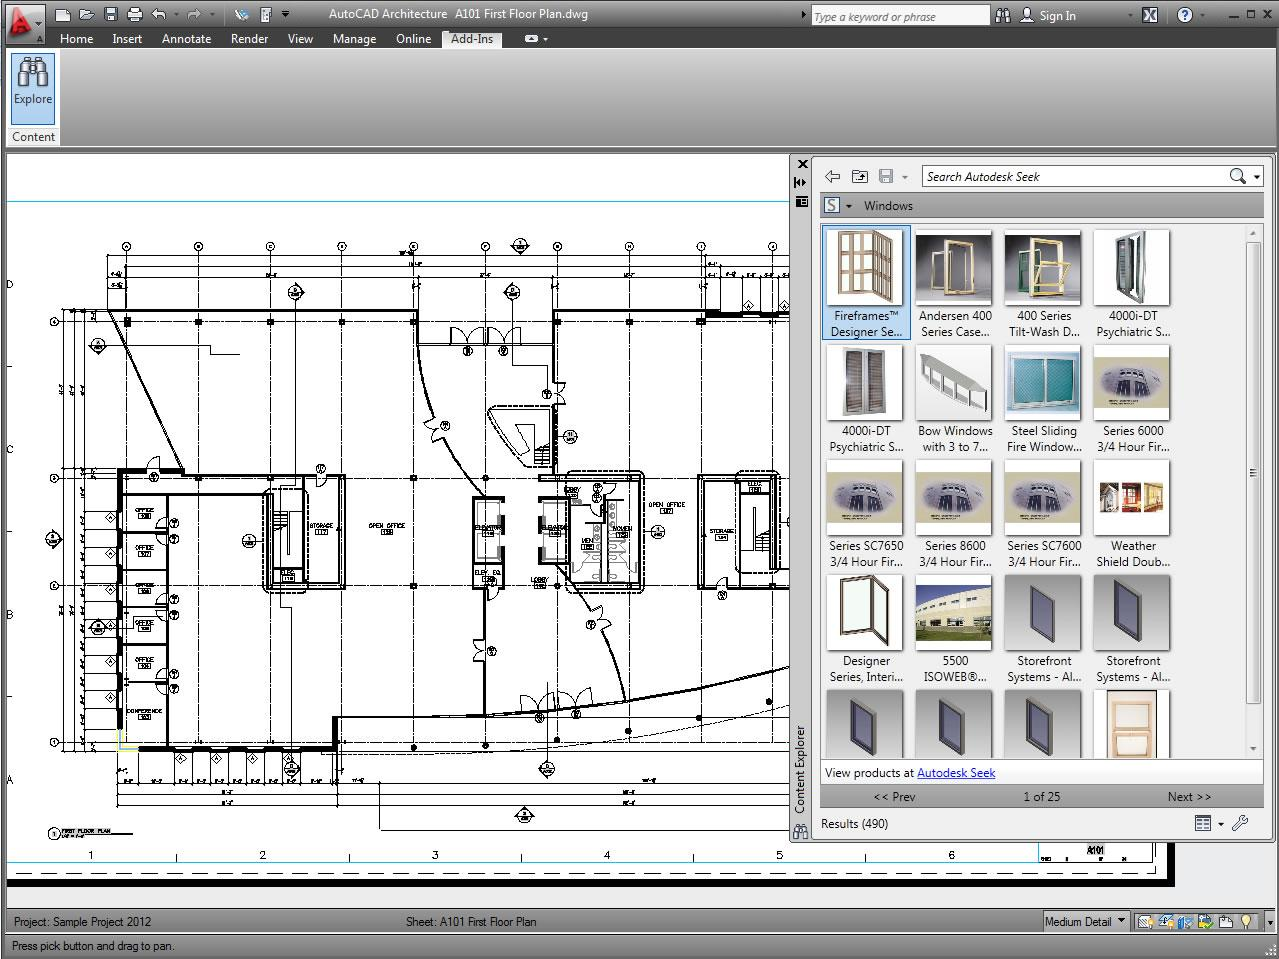 Autocad architecture 2012 jtb world for Web based interior design software